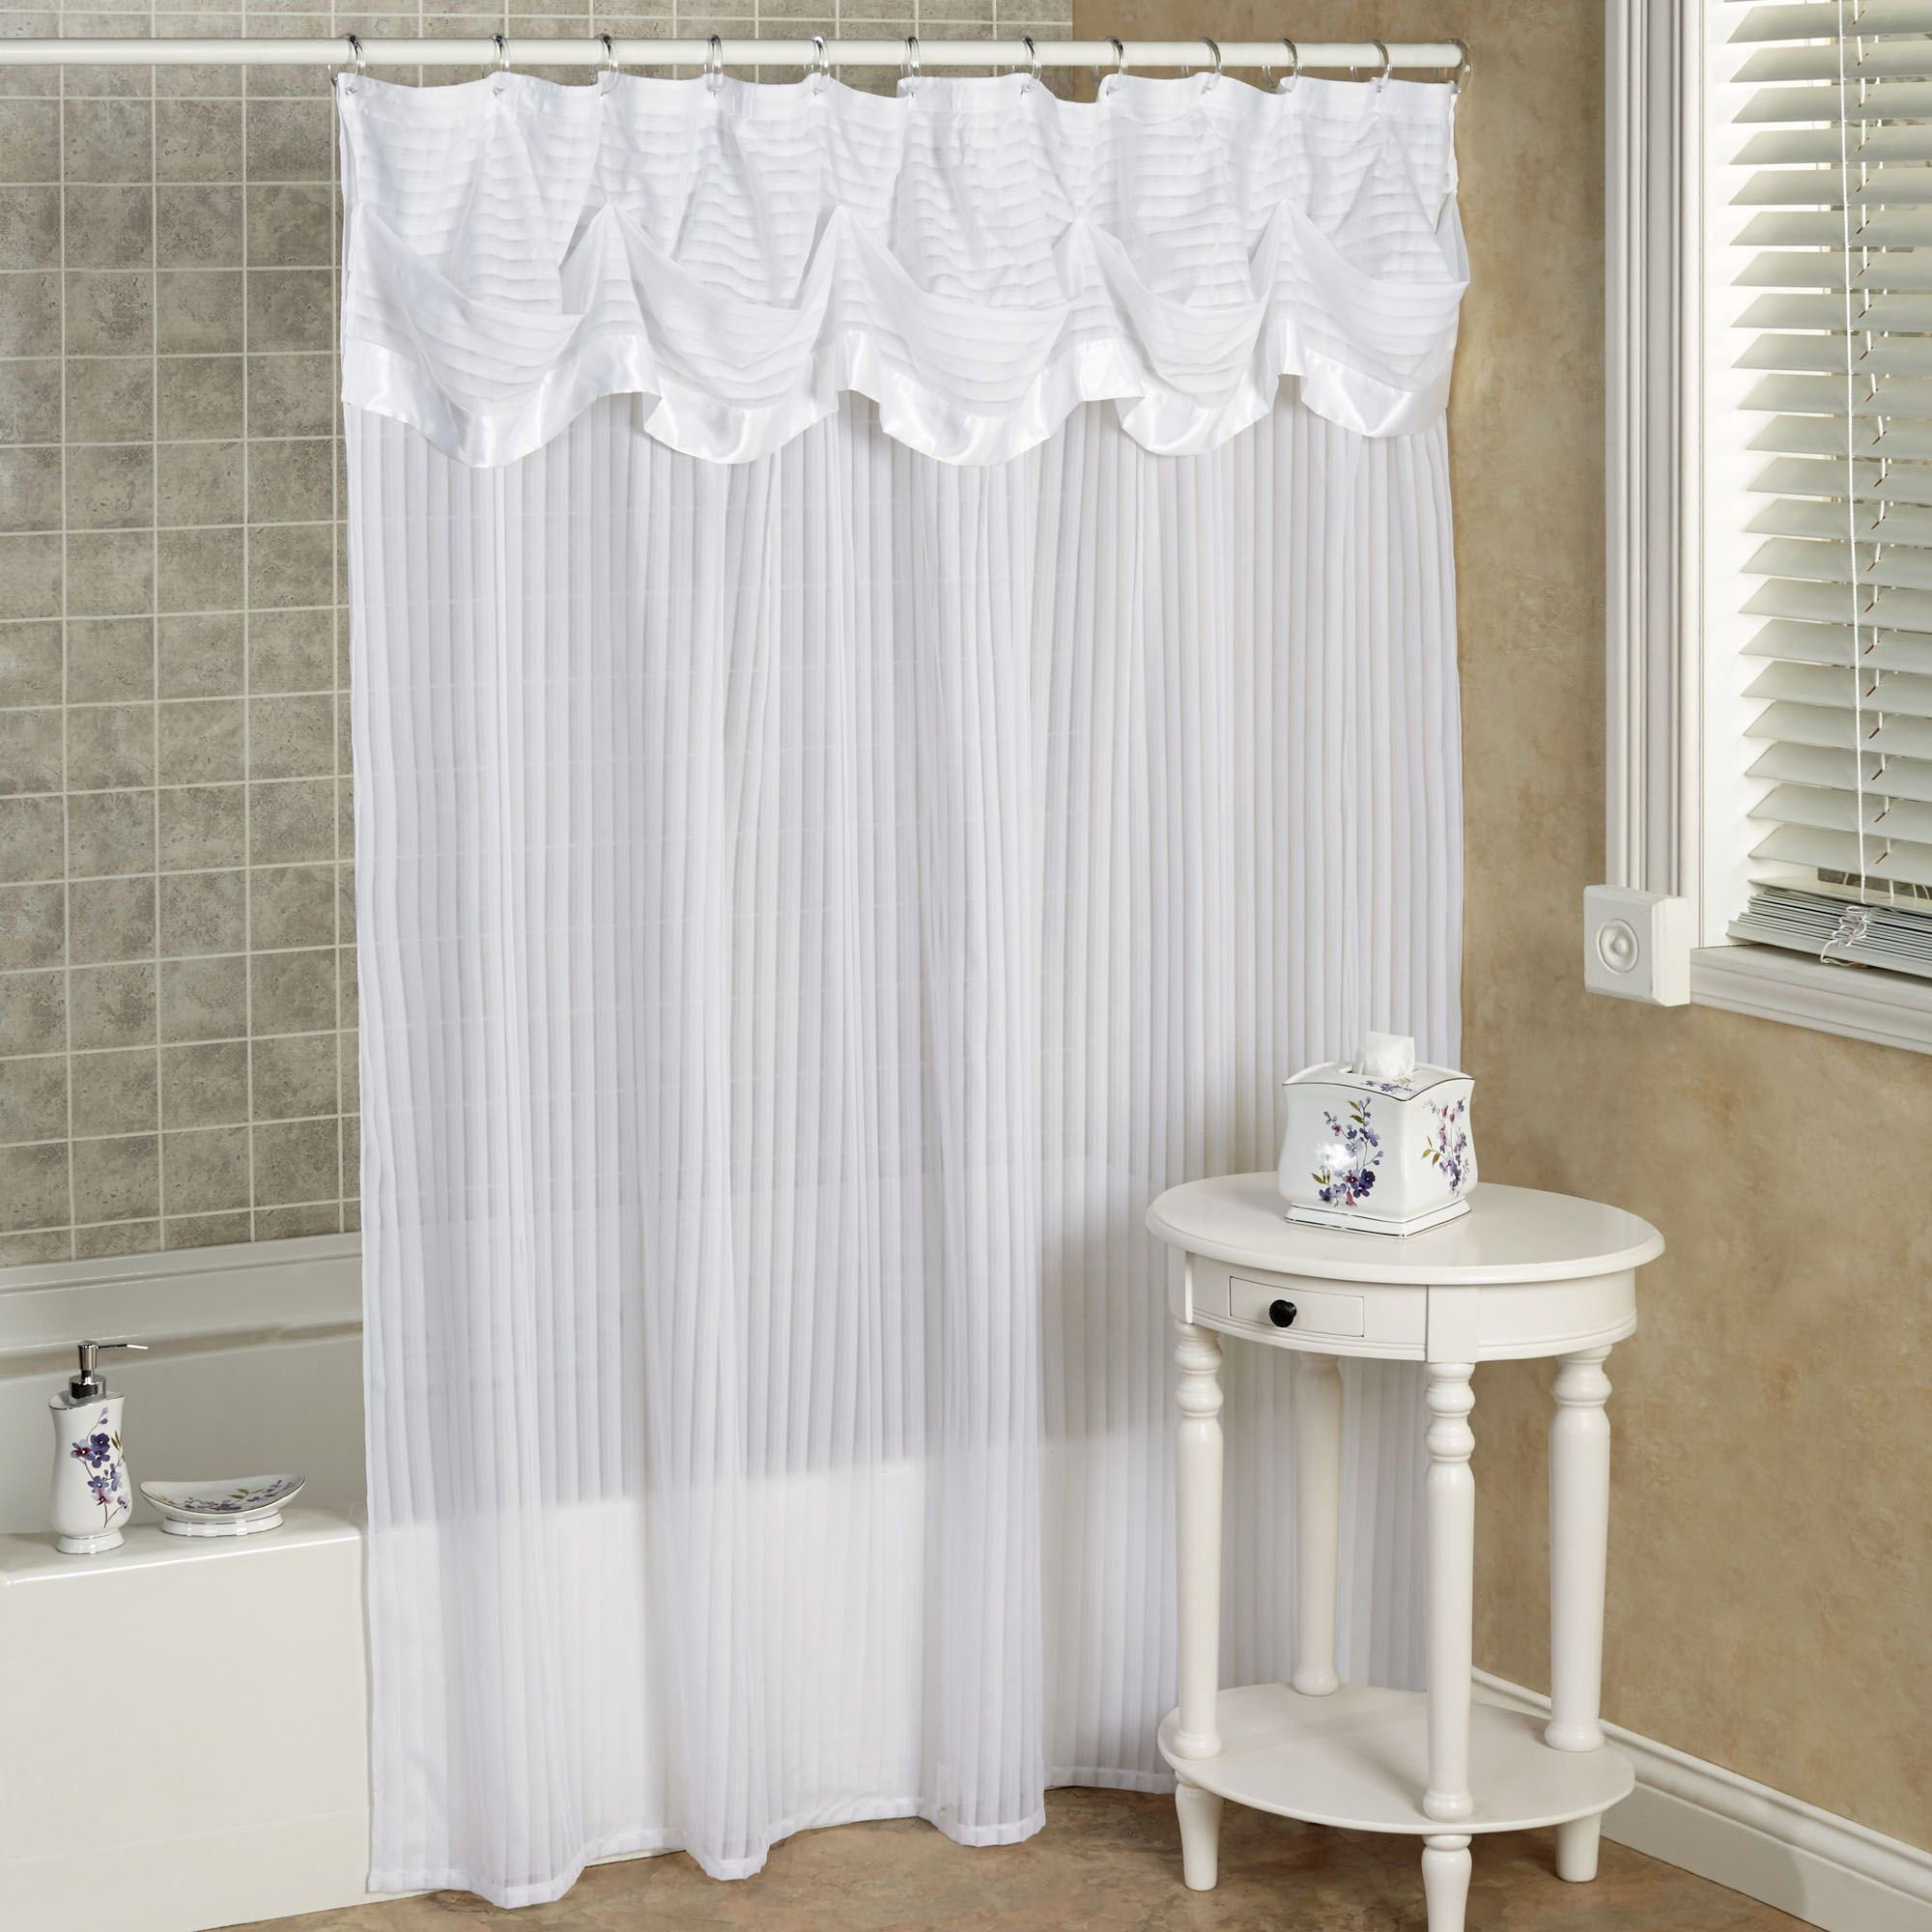 garden curtain bedding free overstock shower orders over shipping lenox moonlit bath on gray product